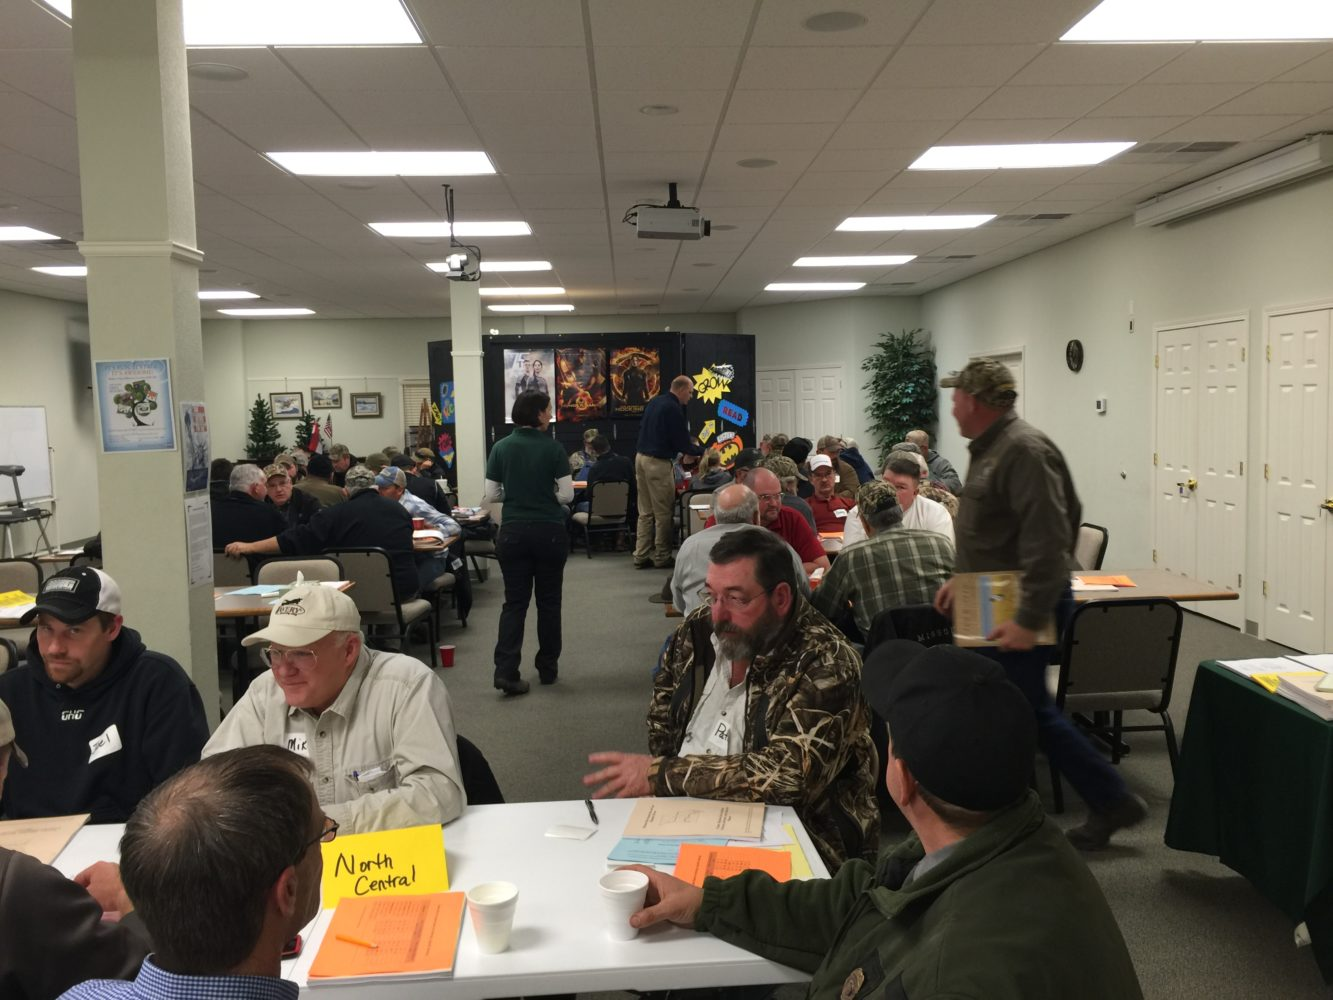 MDC hosts zoning and migration workshops for upcoming waterfowl seasons